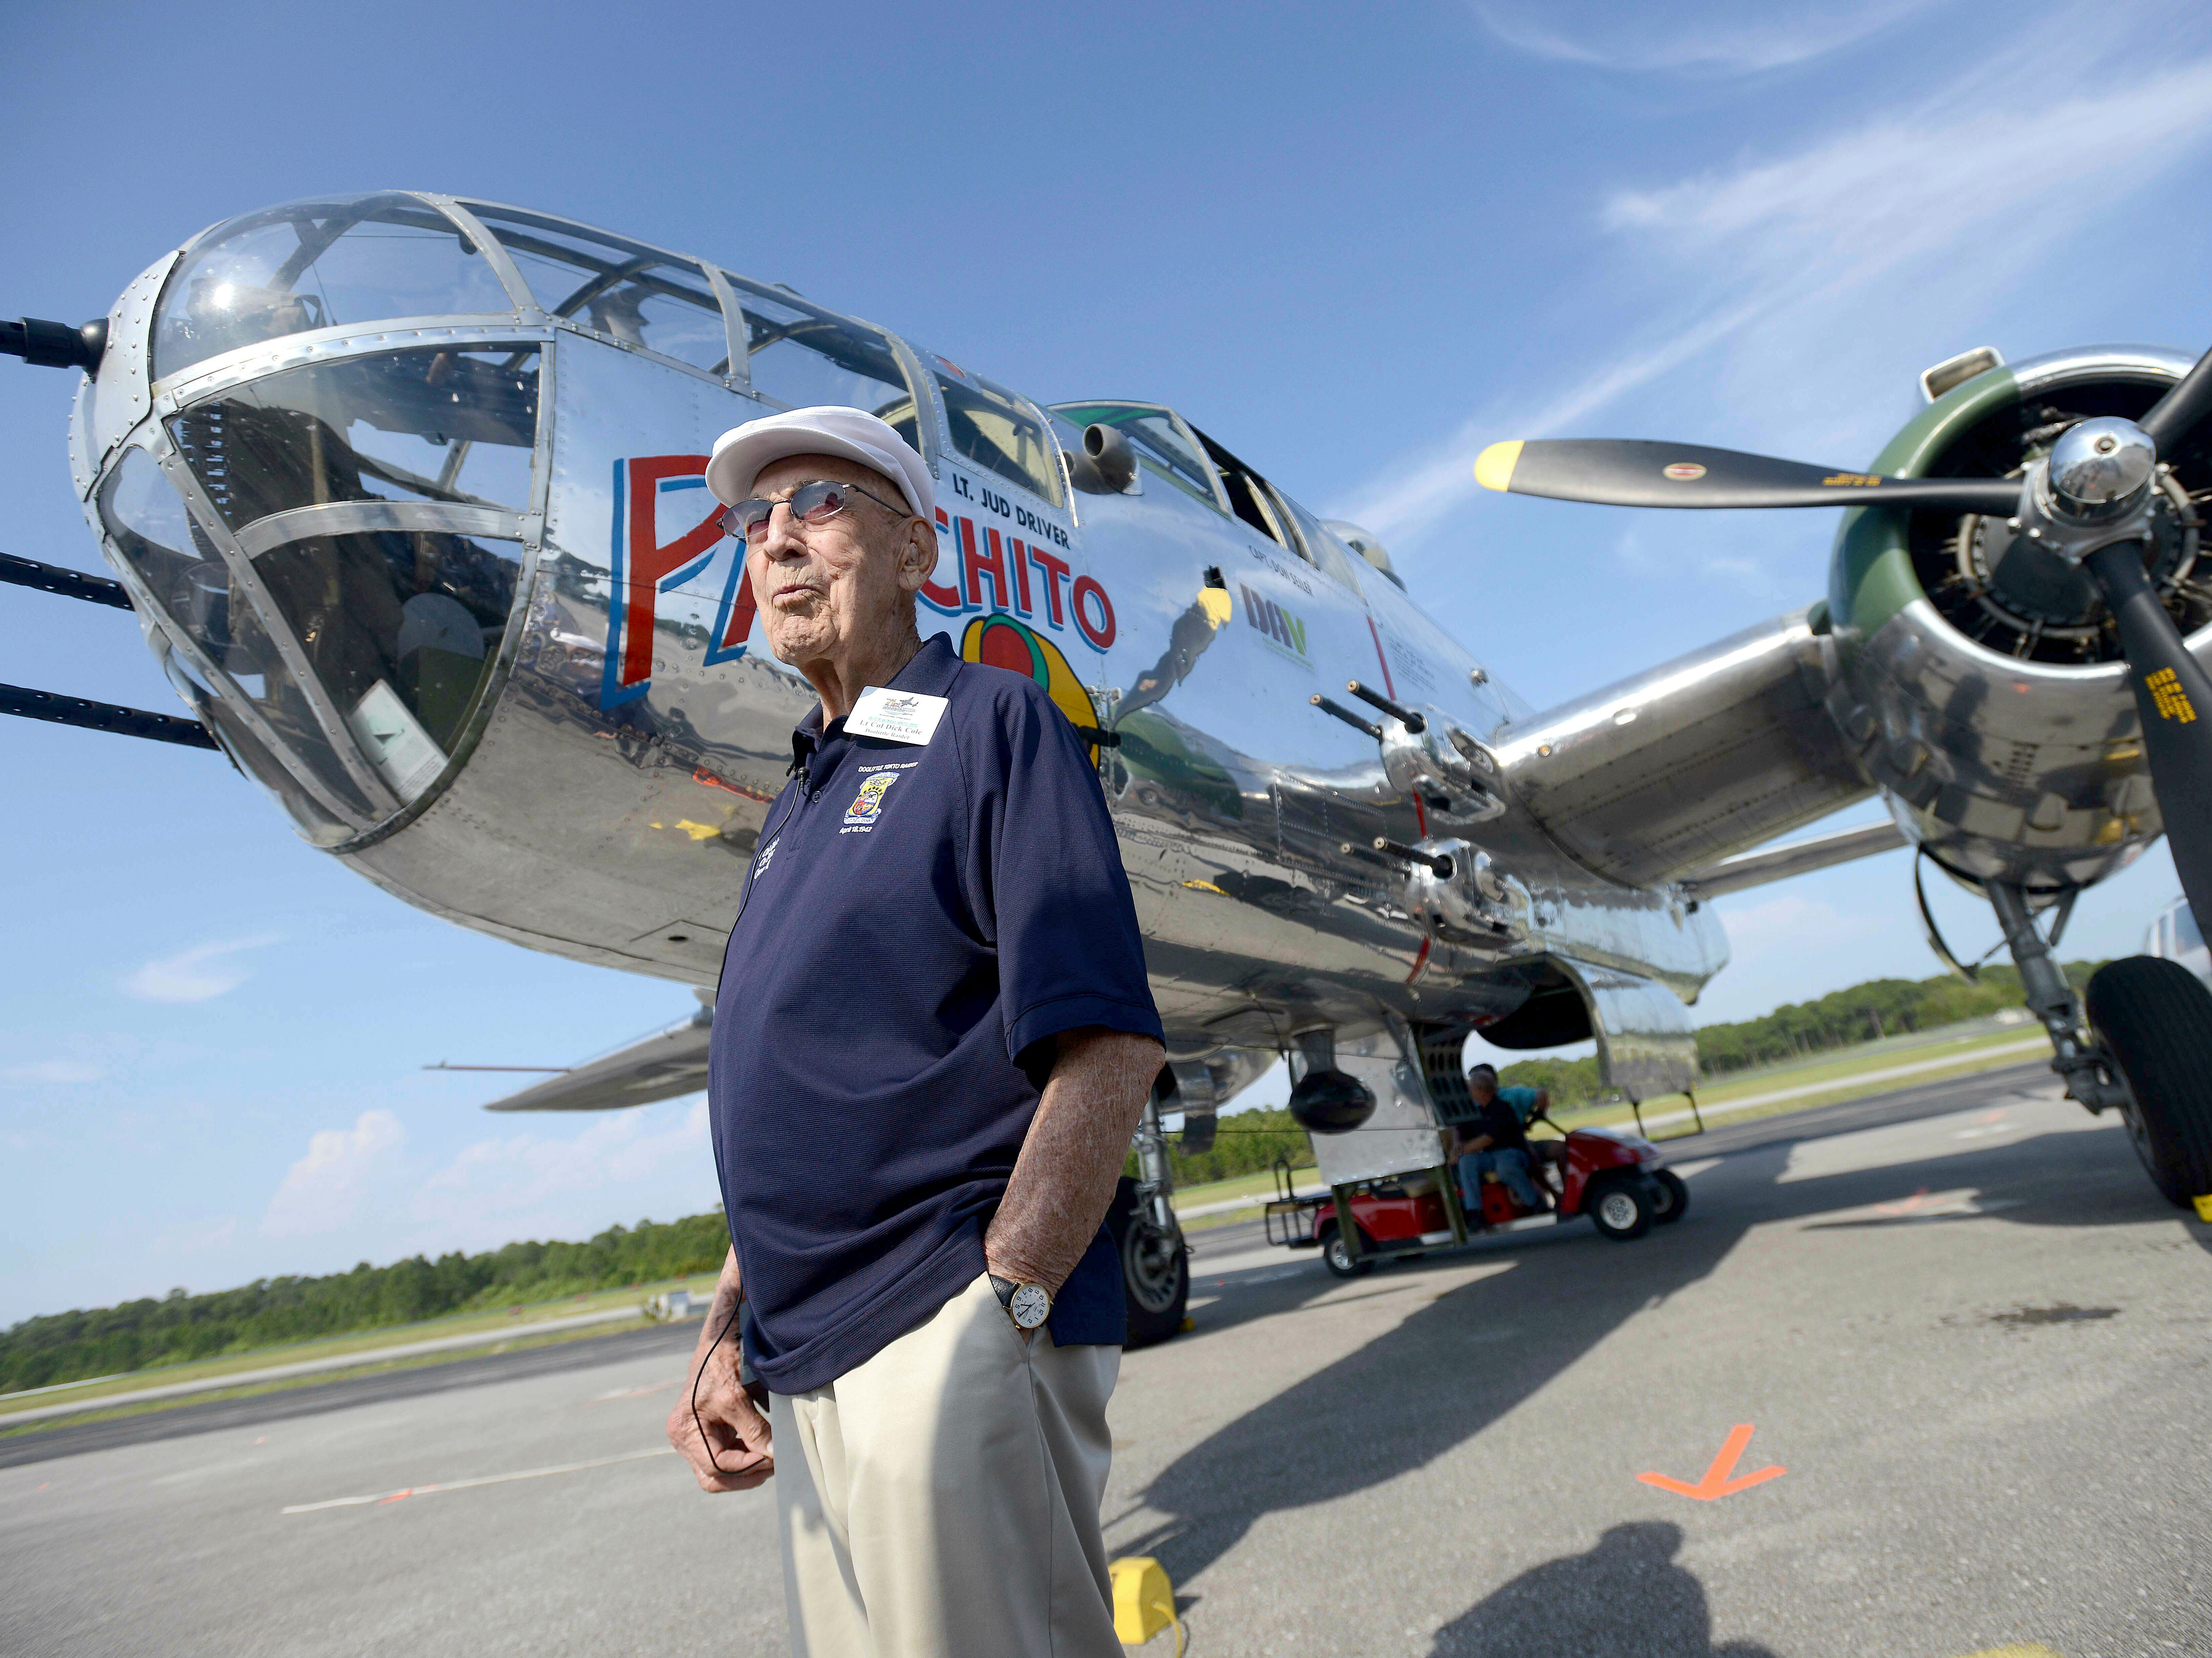 """In this April 16, 2013 file photo, Doolittle Raider Lt. Col. Dick Cole, stands in front of a B-25 at the Destin Airport in Destin, Fla. before a flight as part of the Doolittle Raider 71st Anniversary Reunion. Retired Lt. Col. Richard """"Dick"""" Cole, the last of the 80 Doolittle Tokyo Raiders who carried out the daring U.S. attack on Japan during World War II, has died at a military hospital in Texas. He was 103. A spokesman says Cole died Tuesday, April 9, 2019, at Brooke Army Medical Center in San Antonio, Texas."""